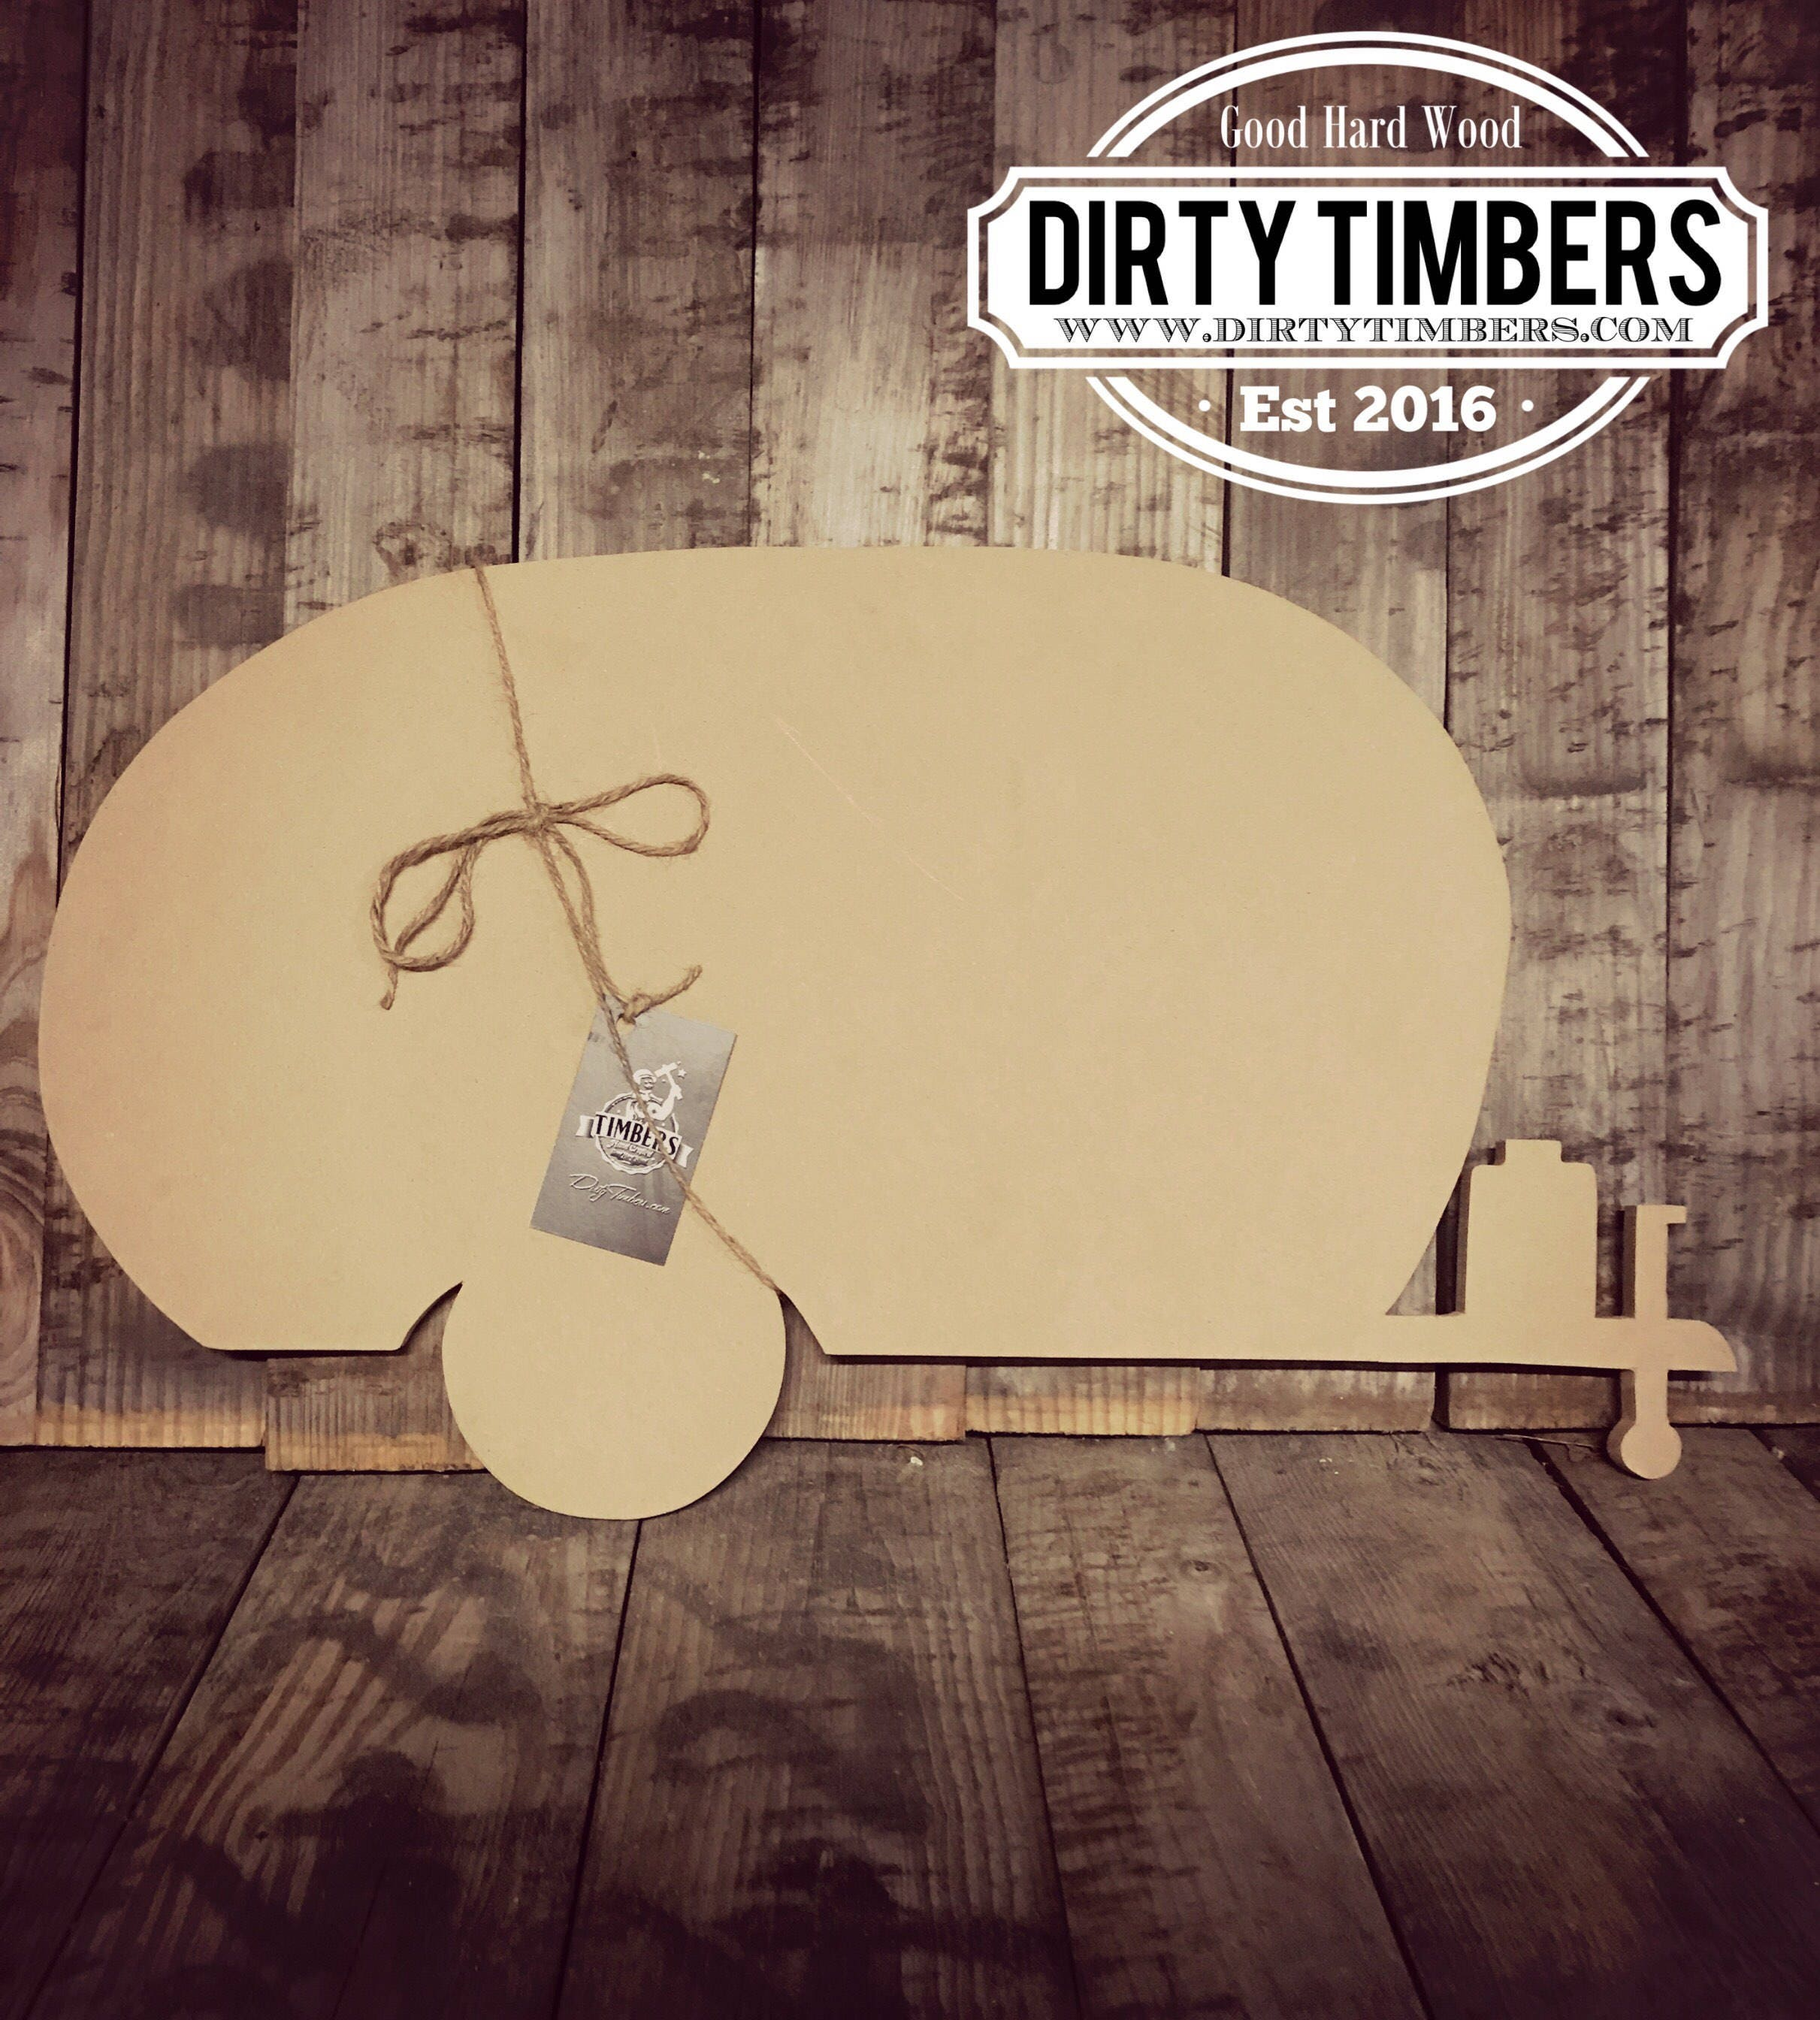 Unfinished, Camper, Large, Diy, Wood, Blank, Cut, Out, Ready To Paint, DIY,  Custom, Door, Hanger, DT2079